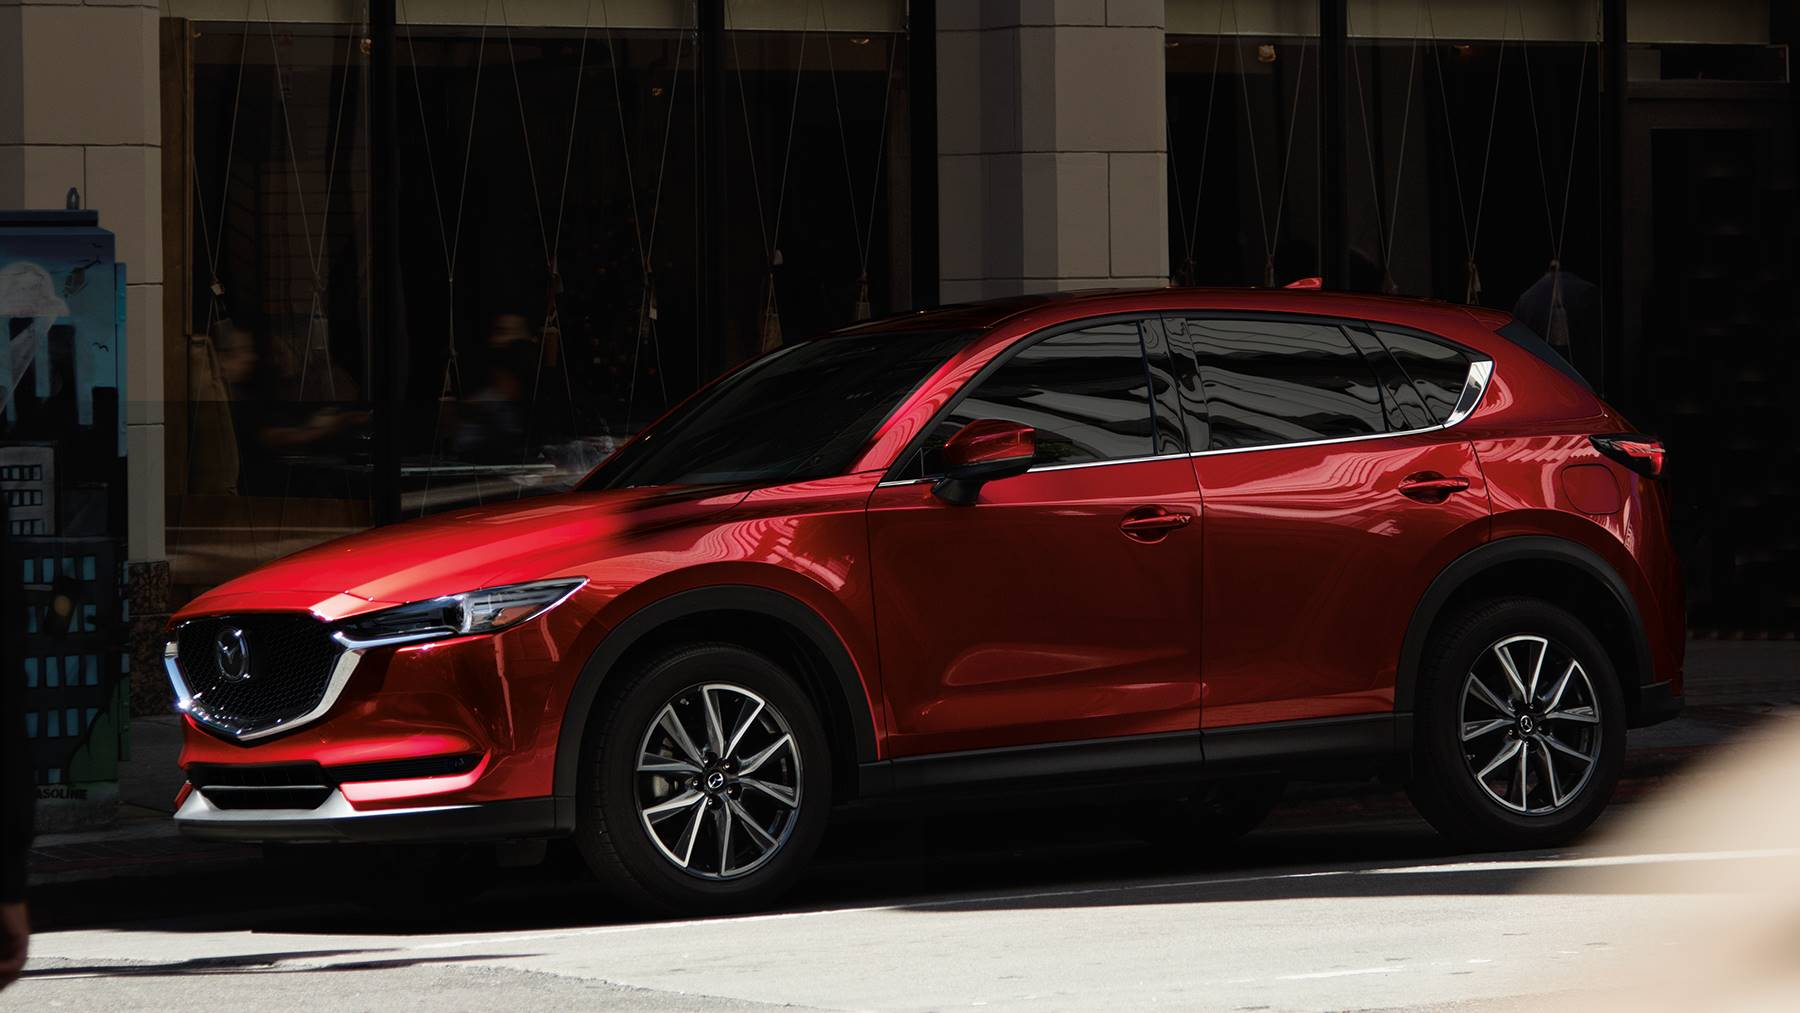 2018 Mazda CX-5 Leasing in Elk Grove, CA